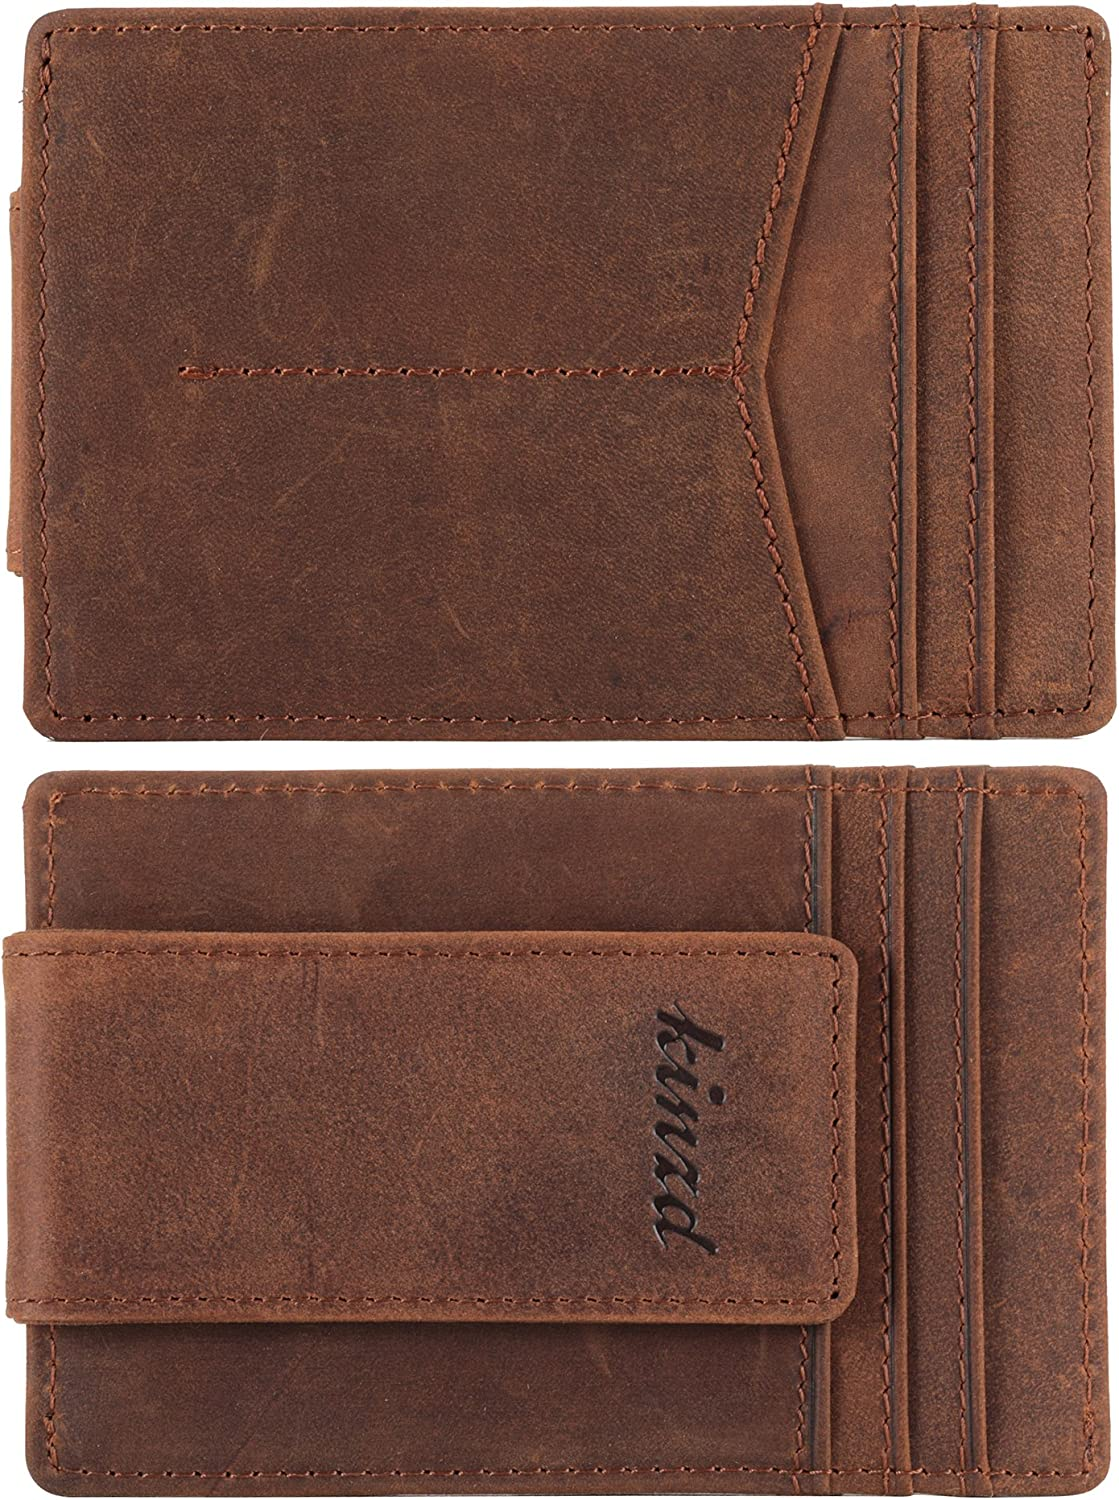 Kinzd Money Clip Front Pocket Wallet Leather RFID Blocking Strong Magnet Thin Wallet Men